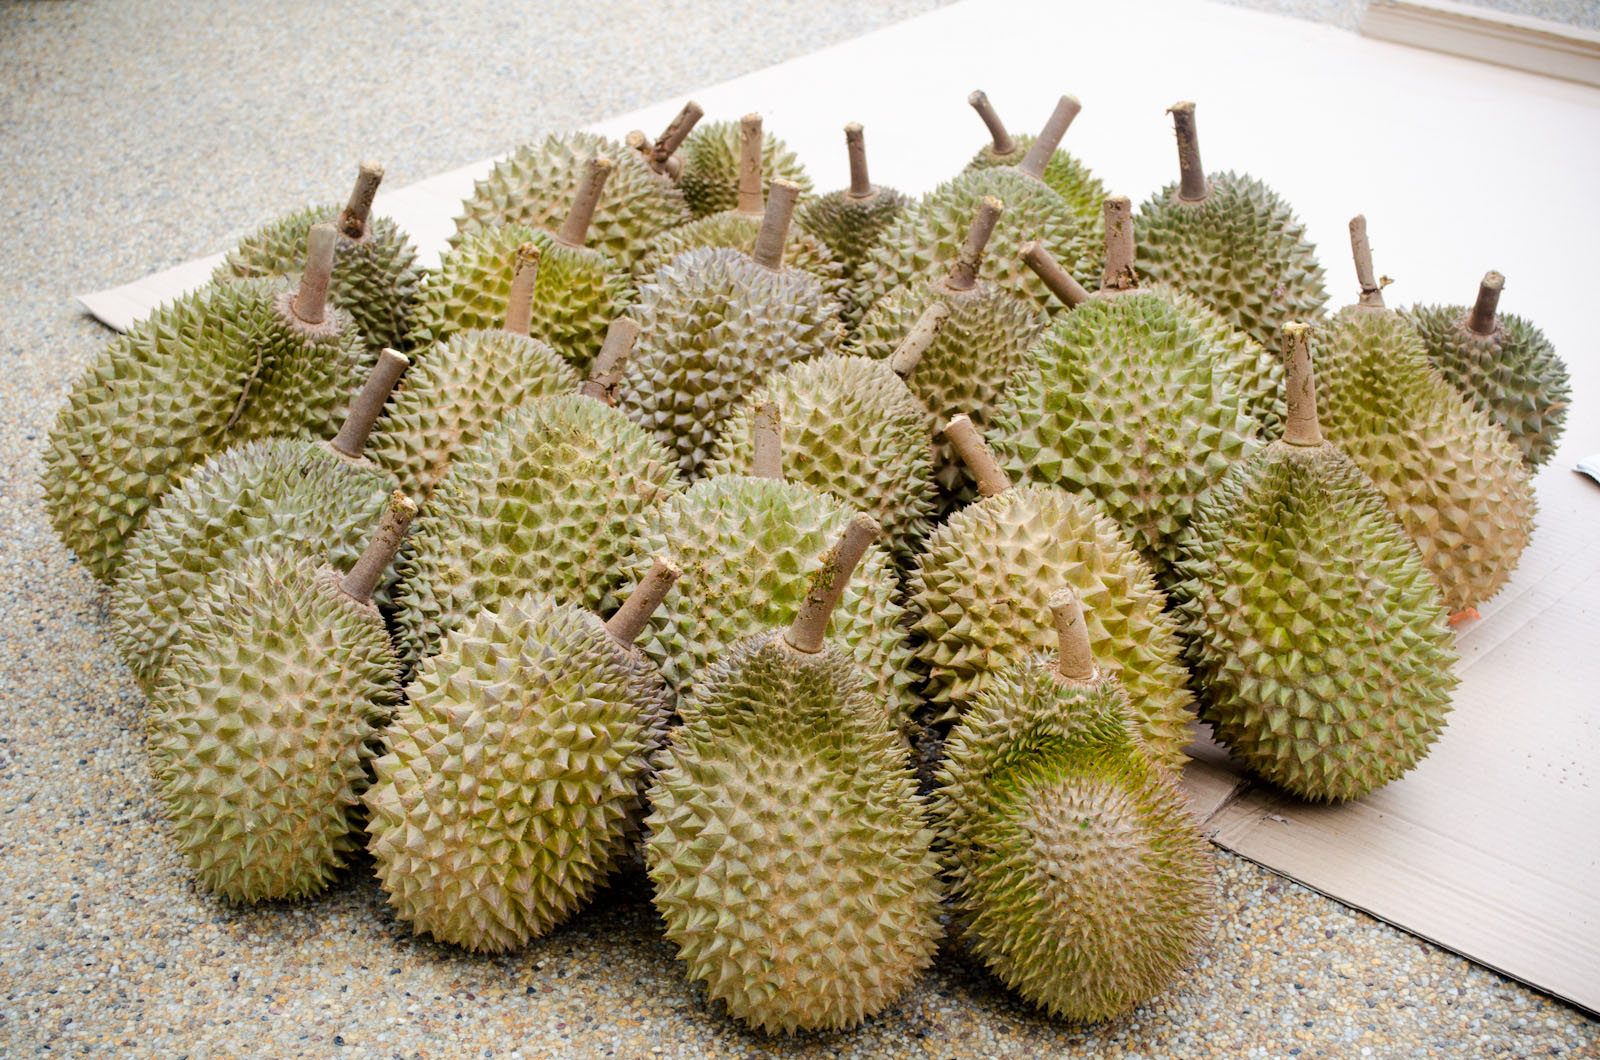 musang king durian feast food momento. Black Bedroom Furniture Sets. Home Design Ideas